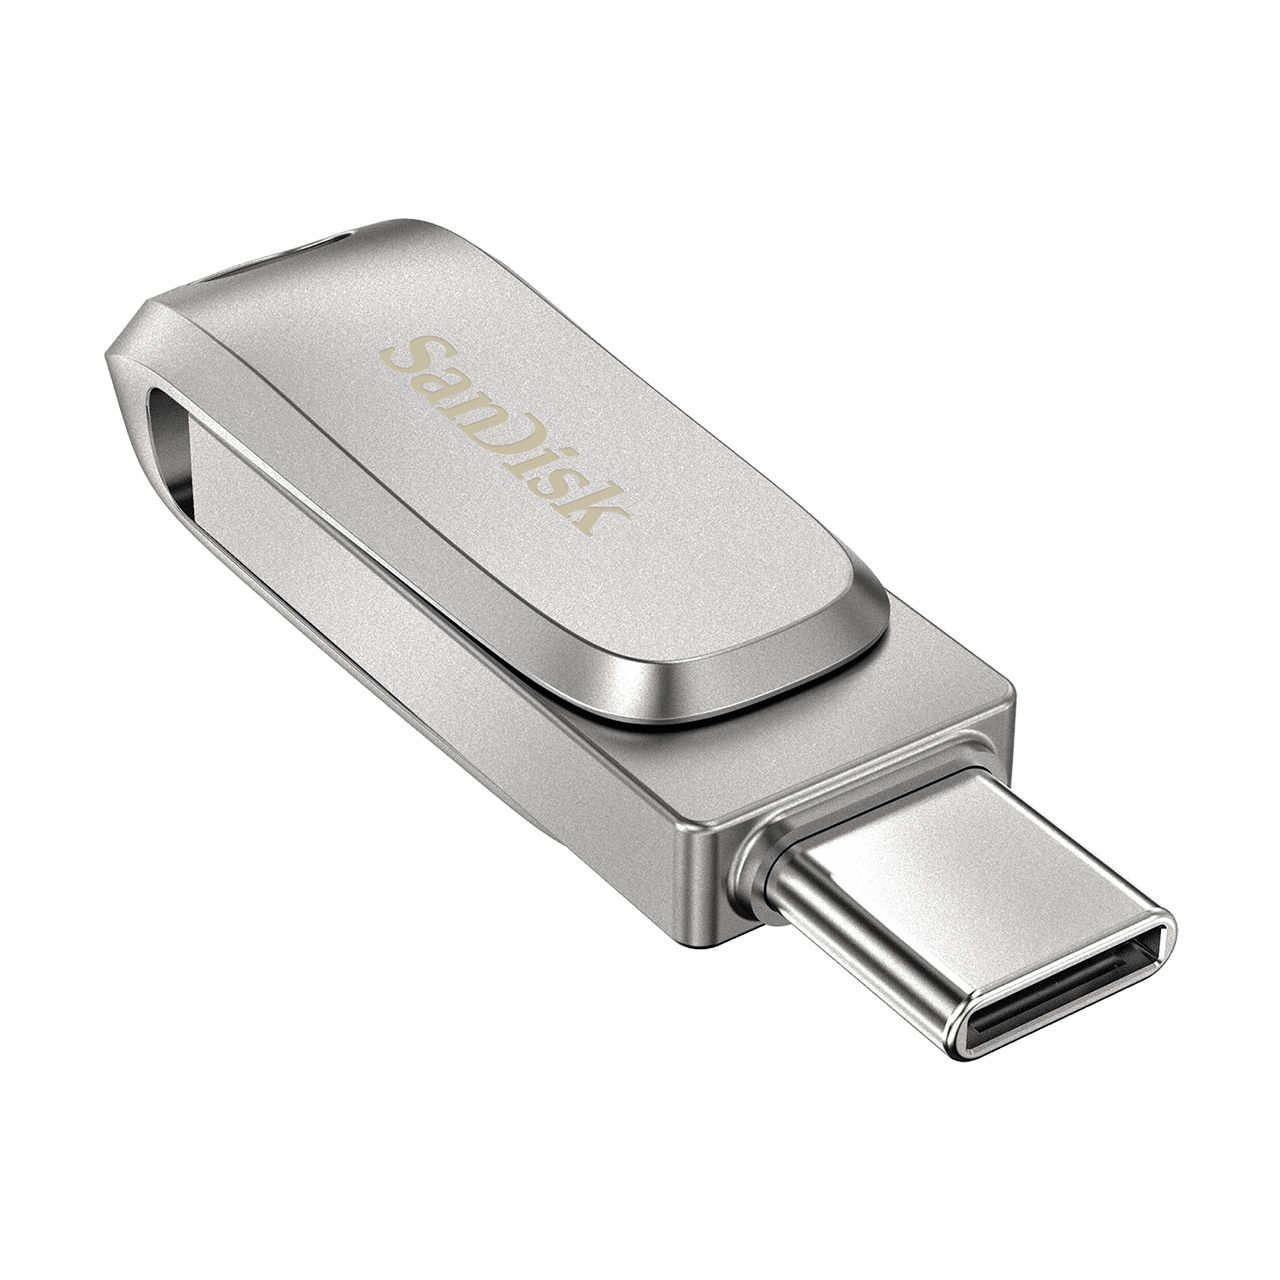 SanDisk Ultra Dual Drive Luxe USB-C 256GB